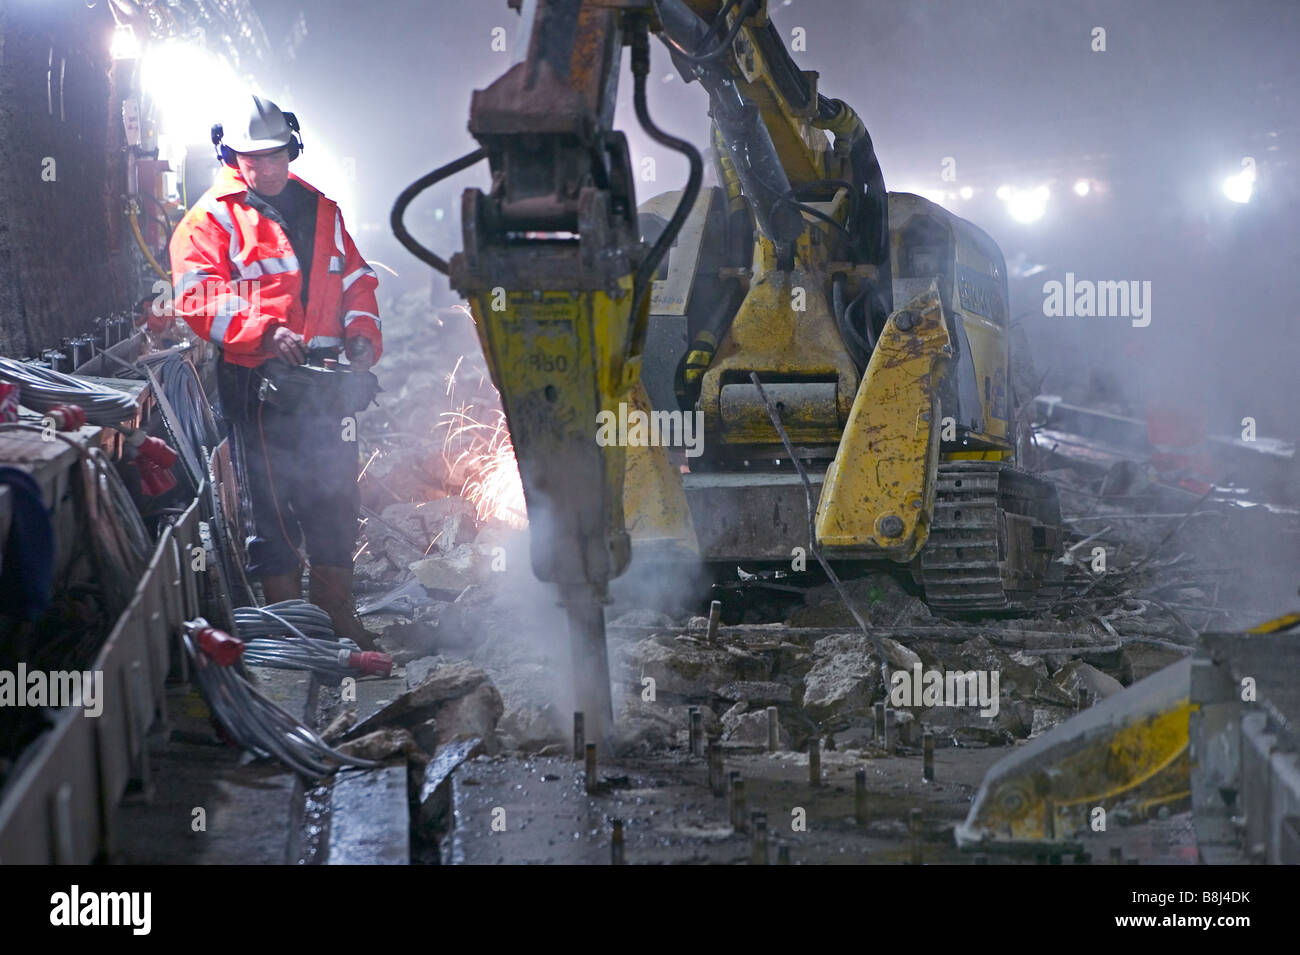 Operative using remote controlled concrete breaker excavating worn-out deck under the tracks during rail tunnel - Stock Image